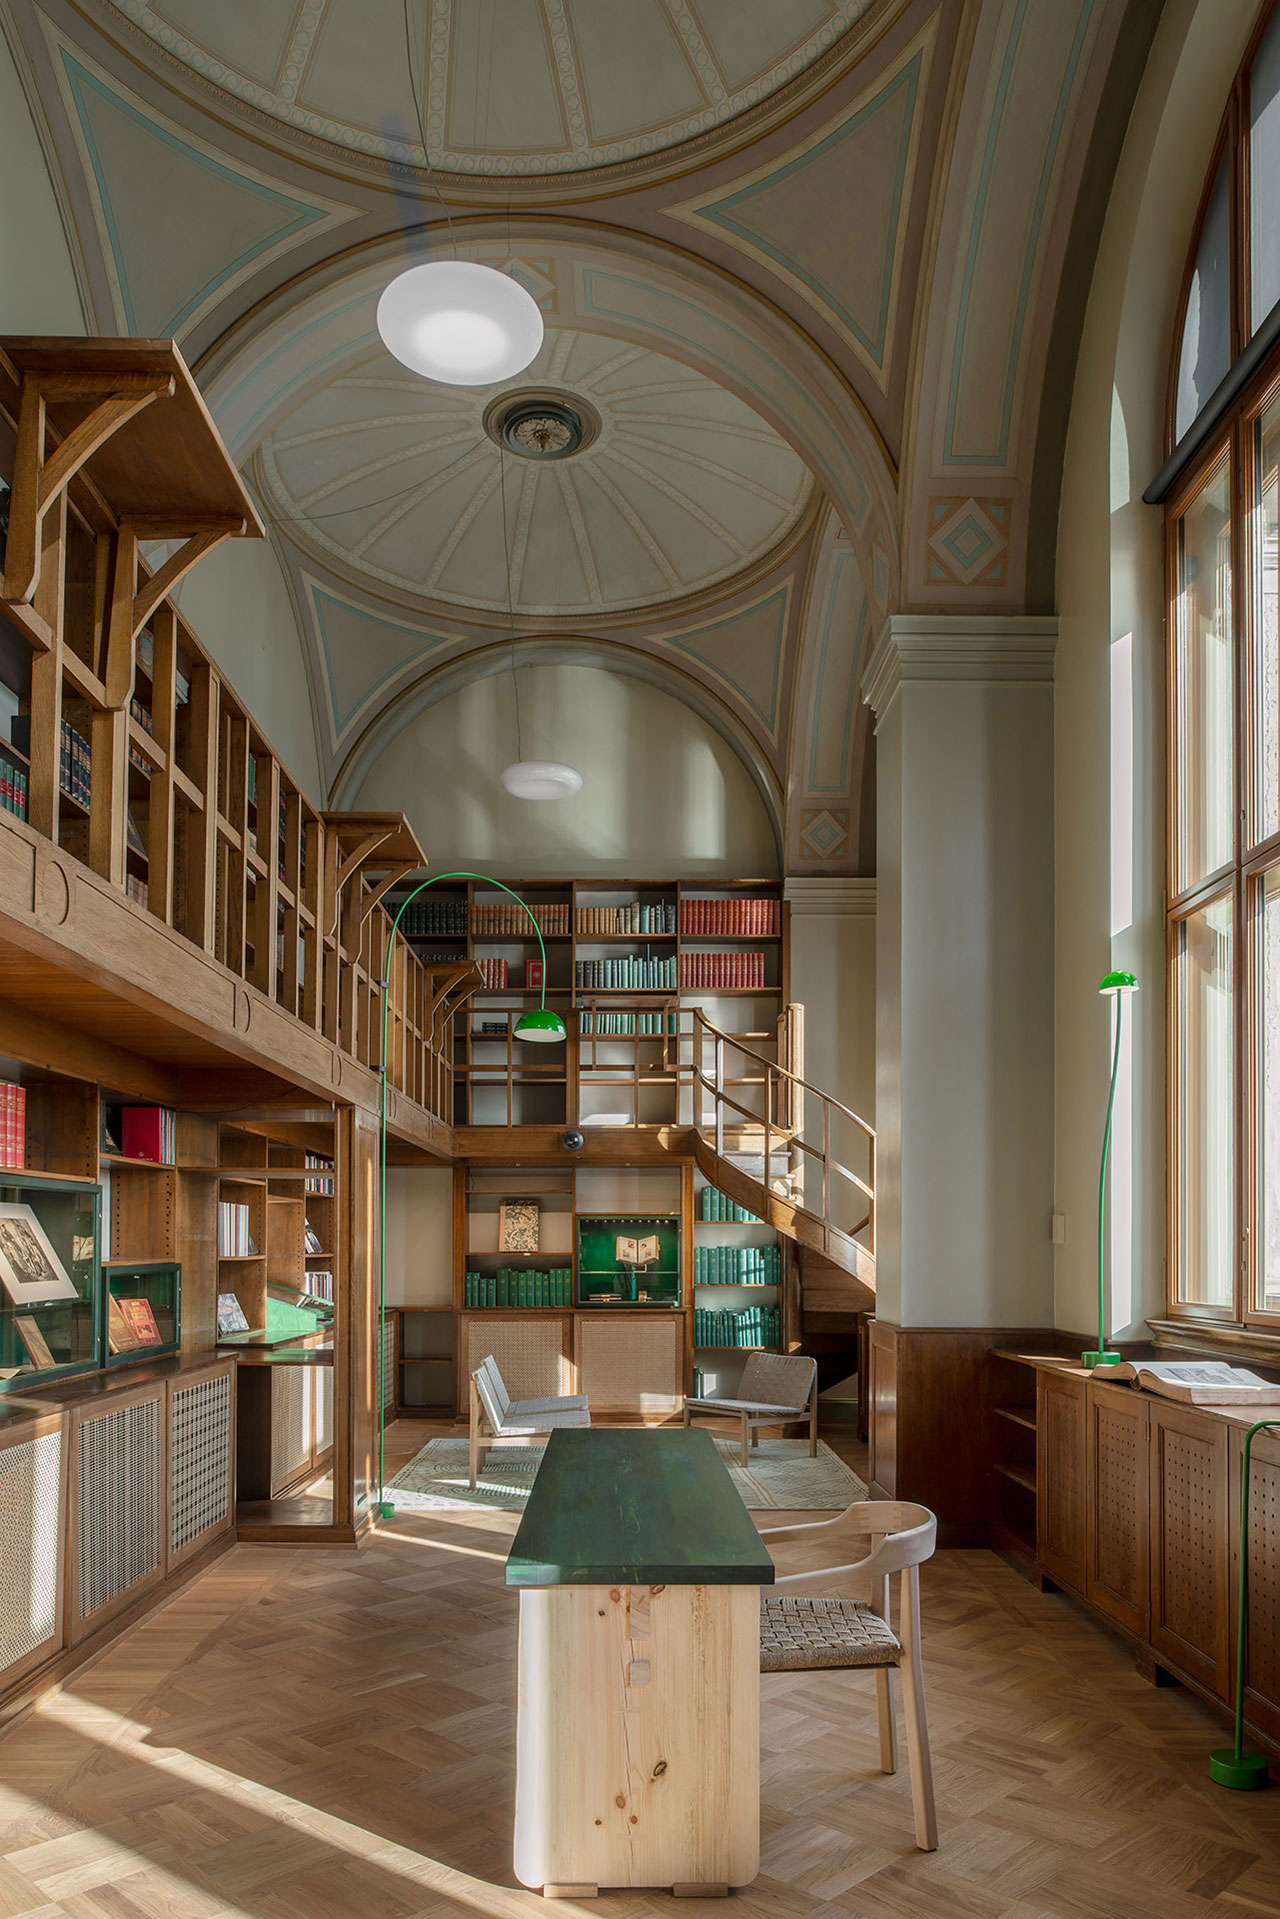 NationalmuseumOld Library, interior design by Emma Olbers. Photo by Andy Liffner.